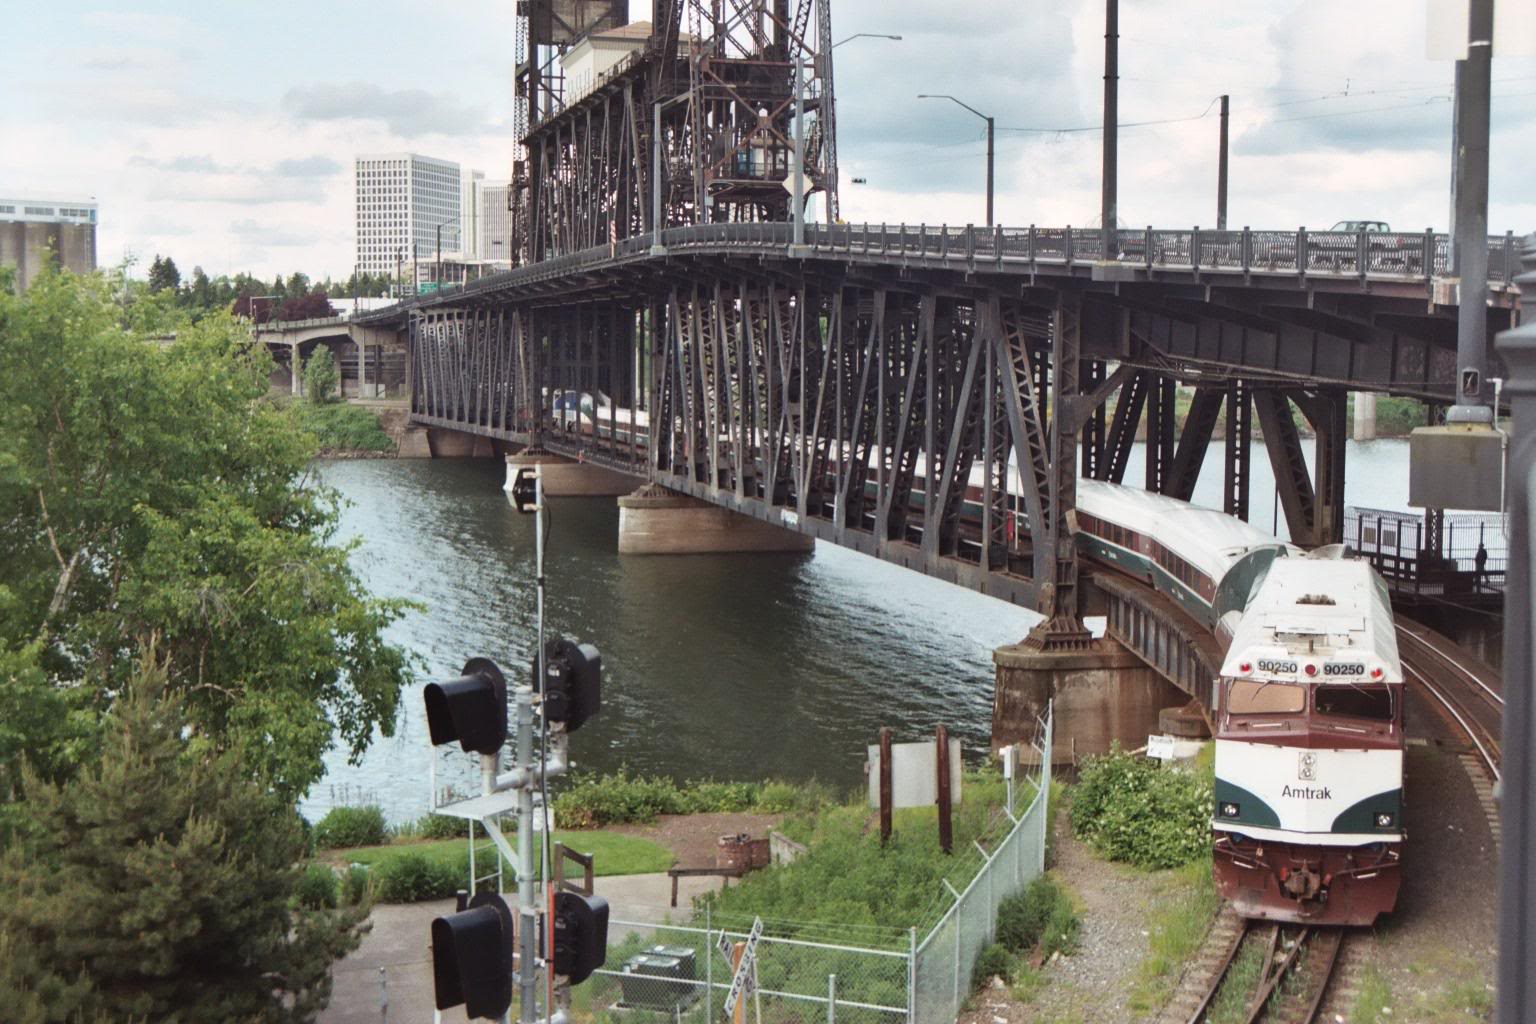 Diesel train at Steel Bridge